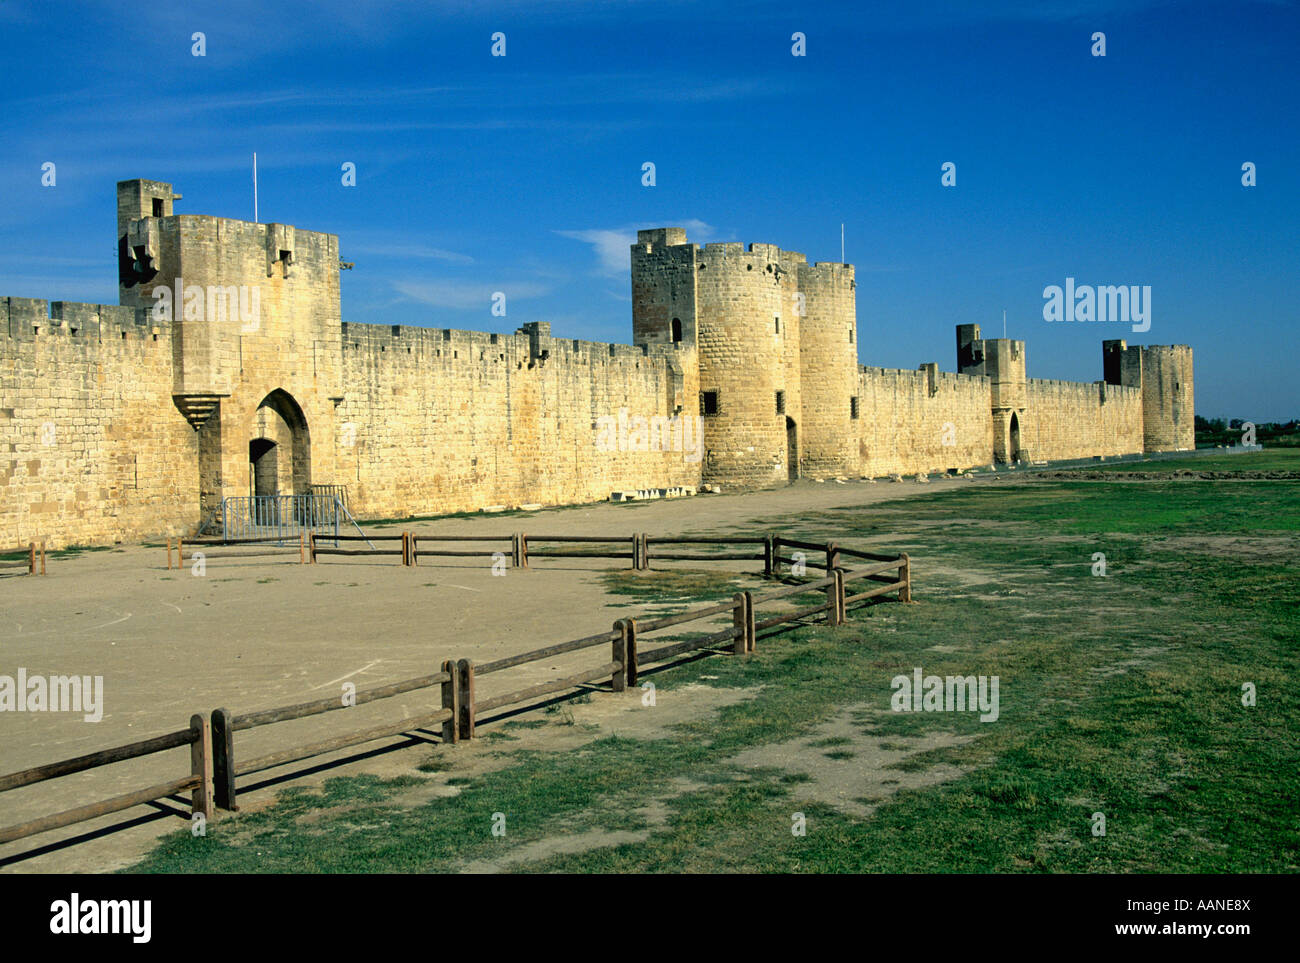 Medieval city walls of the town of Aigues-Mortes, Bouches du Rhone, France, Europe - Stock Image